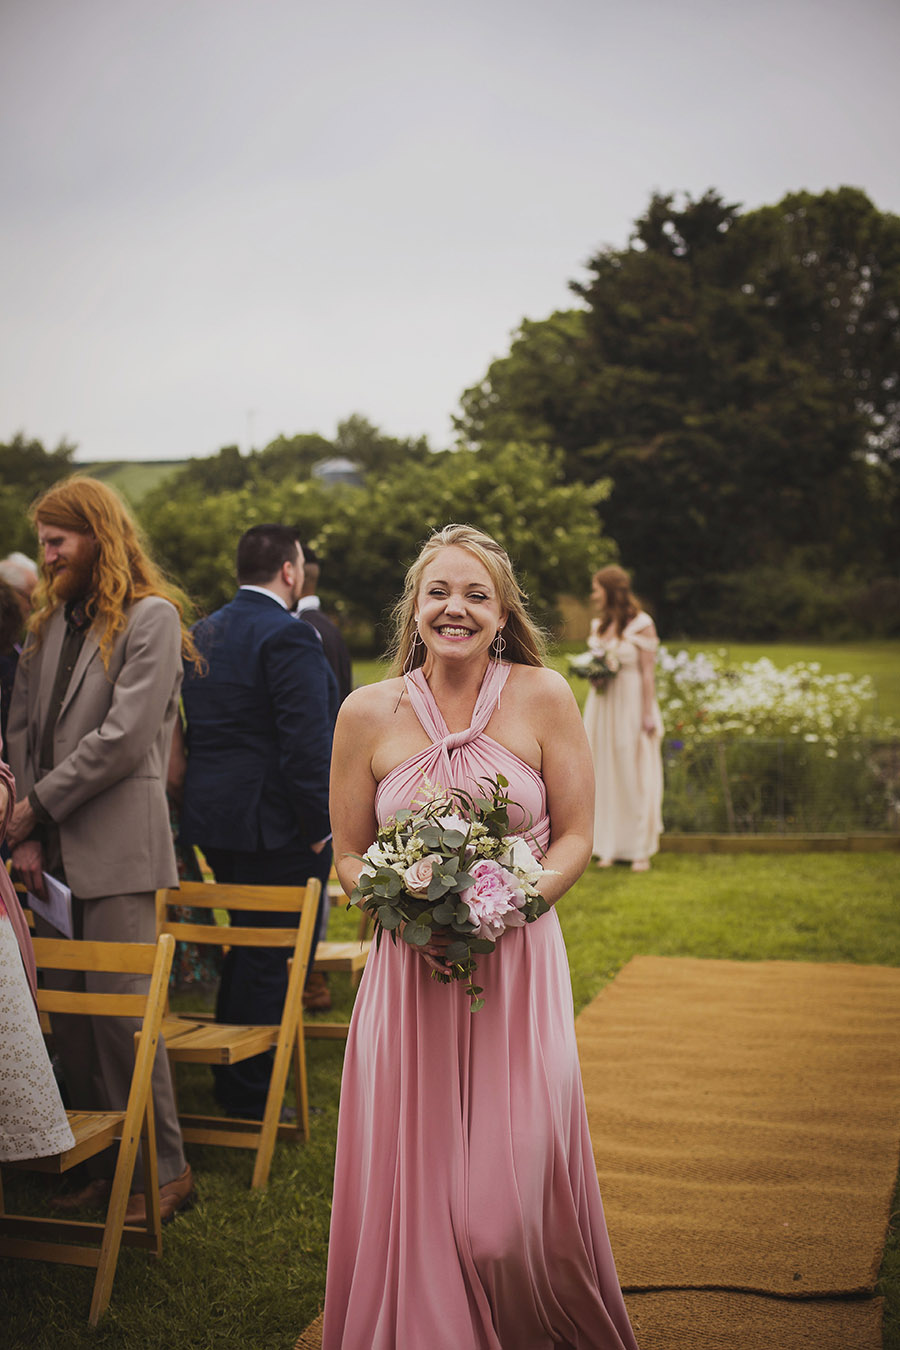 Relaxed outdoor wedding at Cott Farm Barn with images by Heather Birnie Photography on the English Wedding Blog (14)